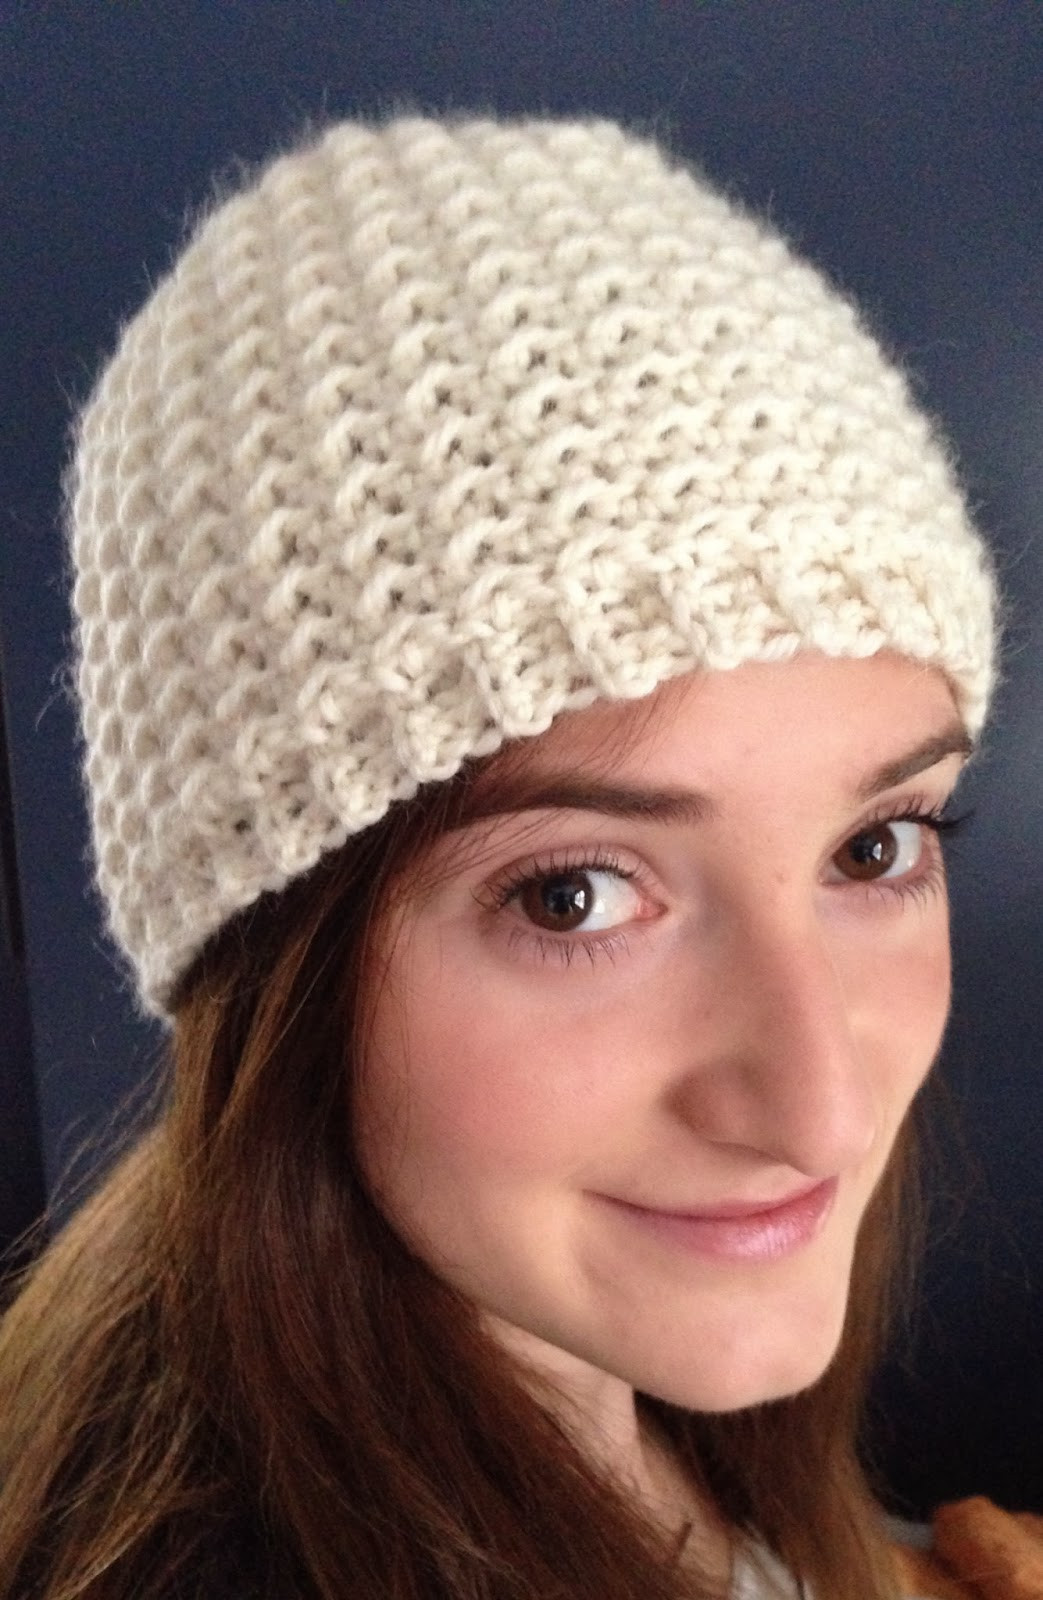 Crochet Beanie Hat Awesome Ball Hank N Skein Oh so Seedy Beanie Free Crochet Hat Of New 50 Images Crochet Beanie Hat